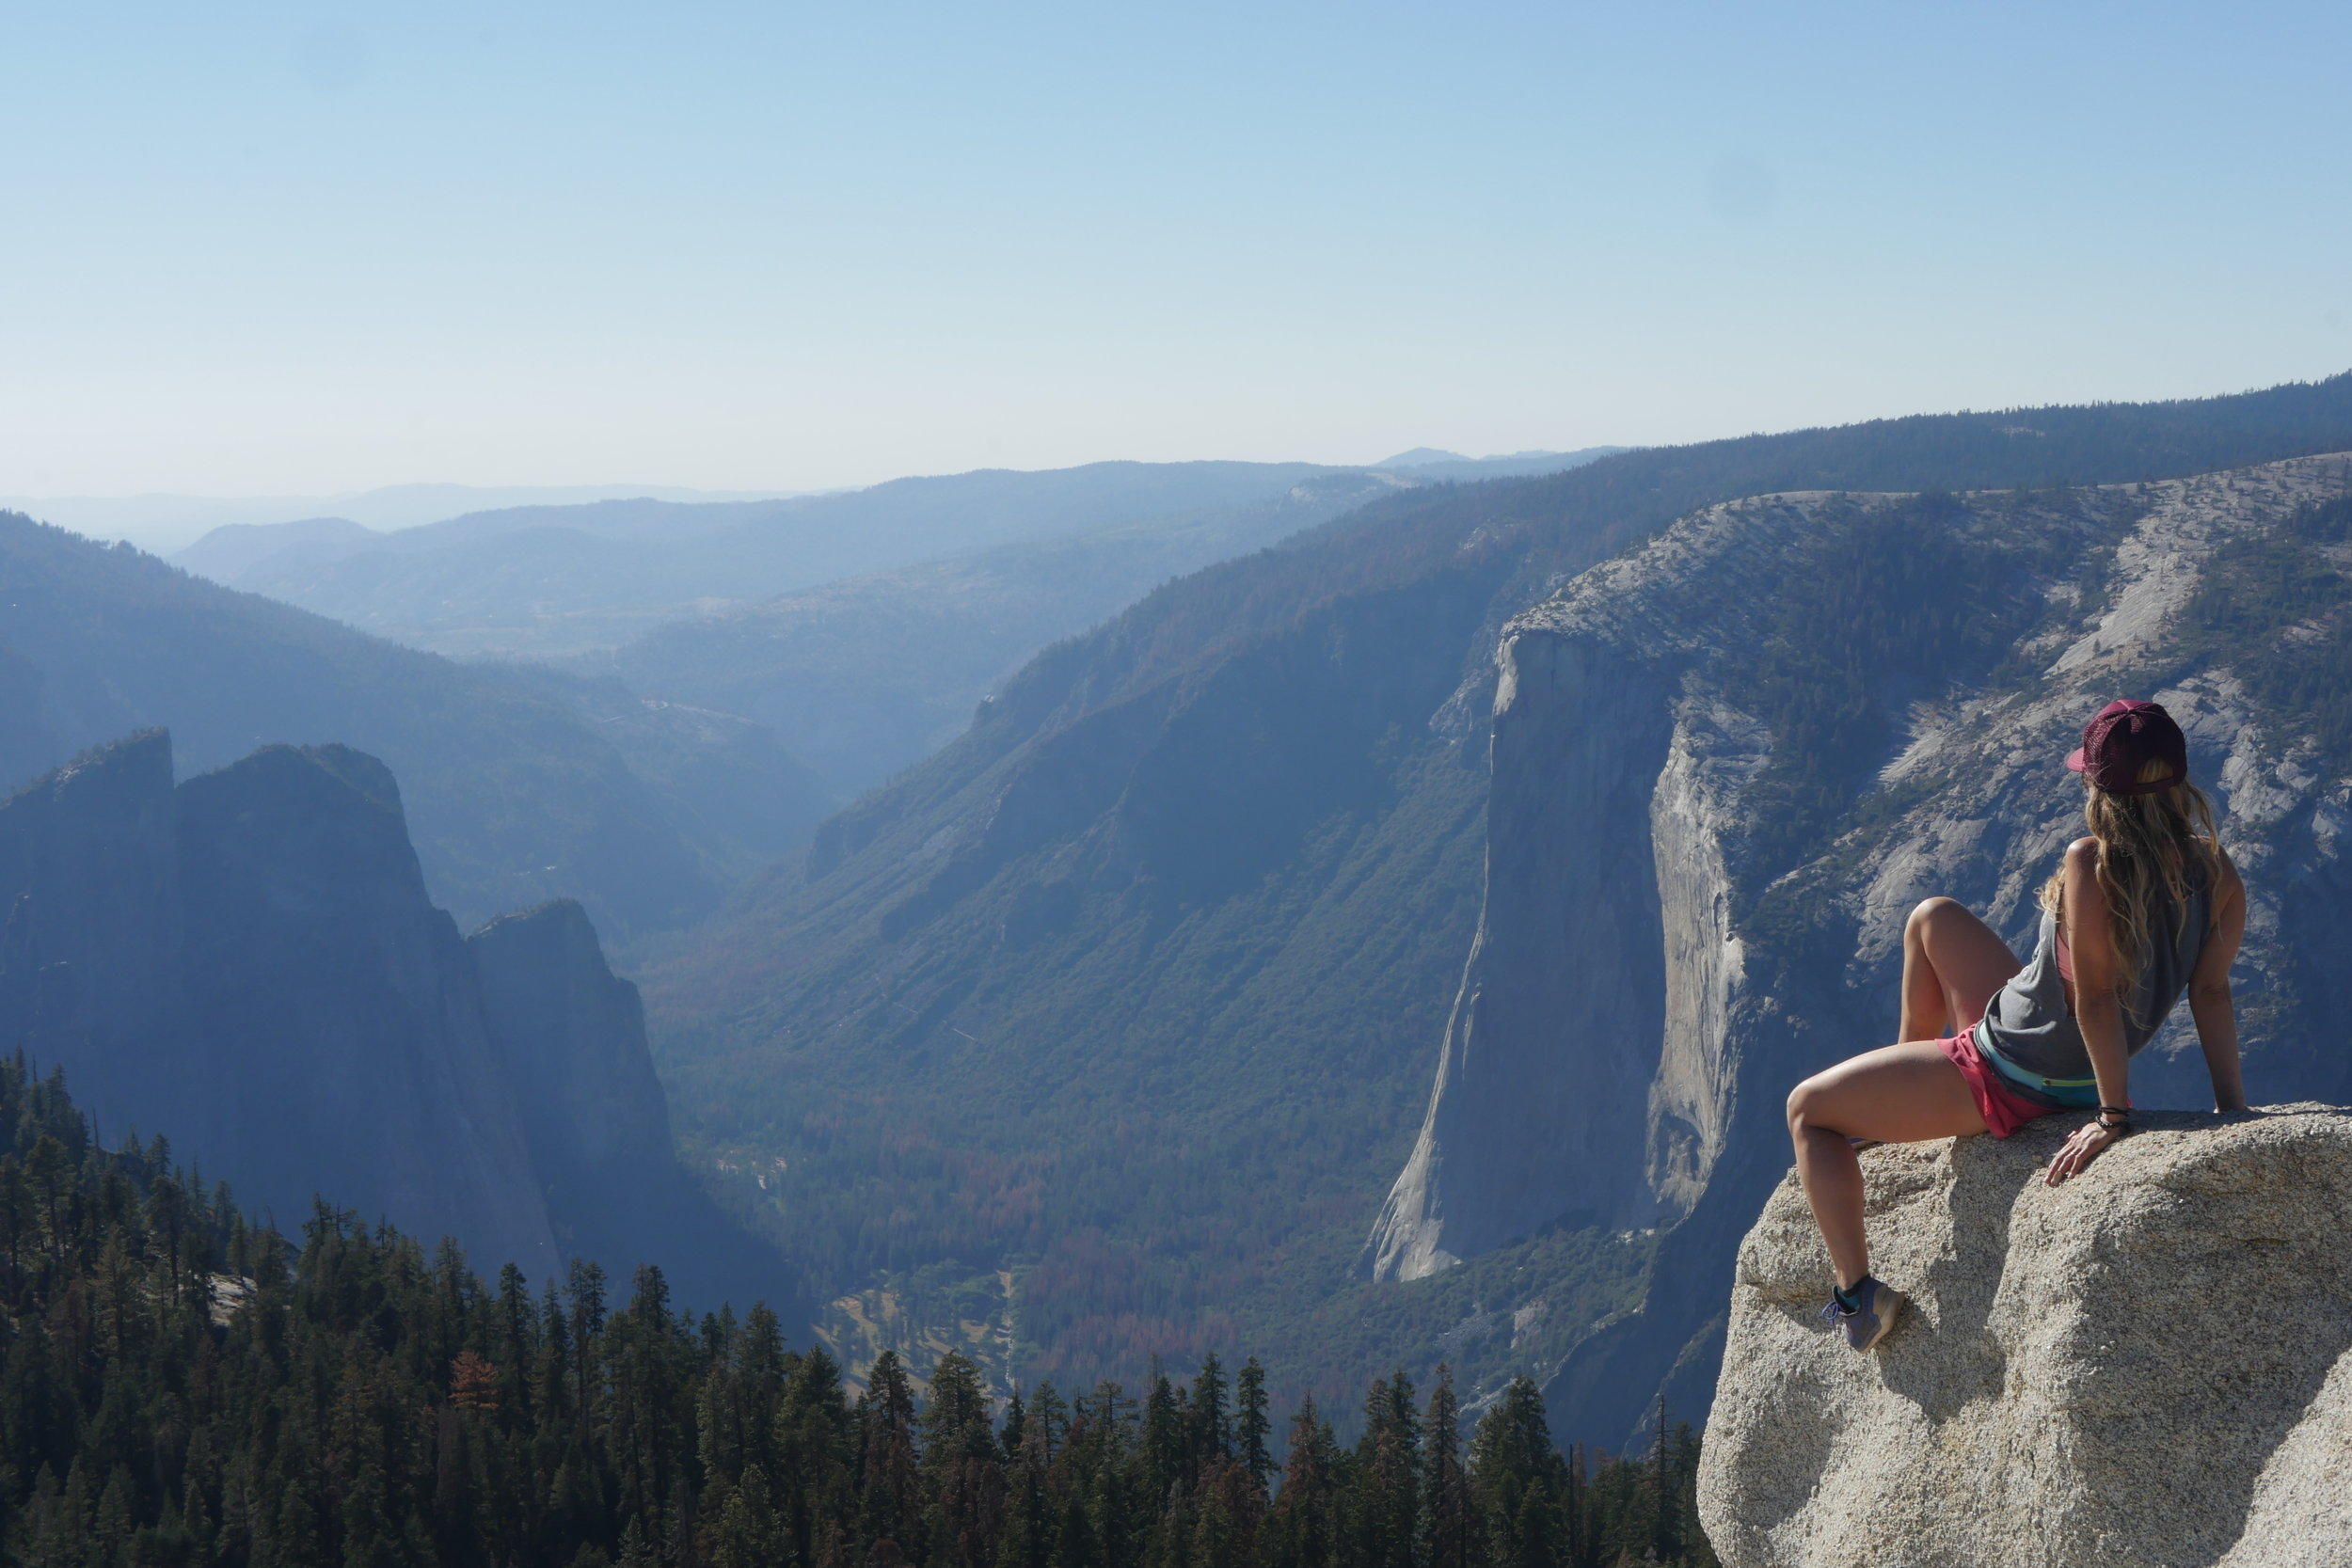 From Sentinel Dome you get a stunning view of El Capitan